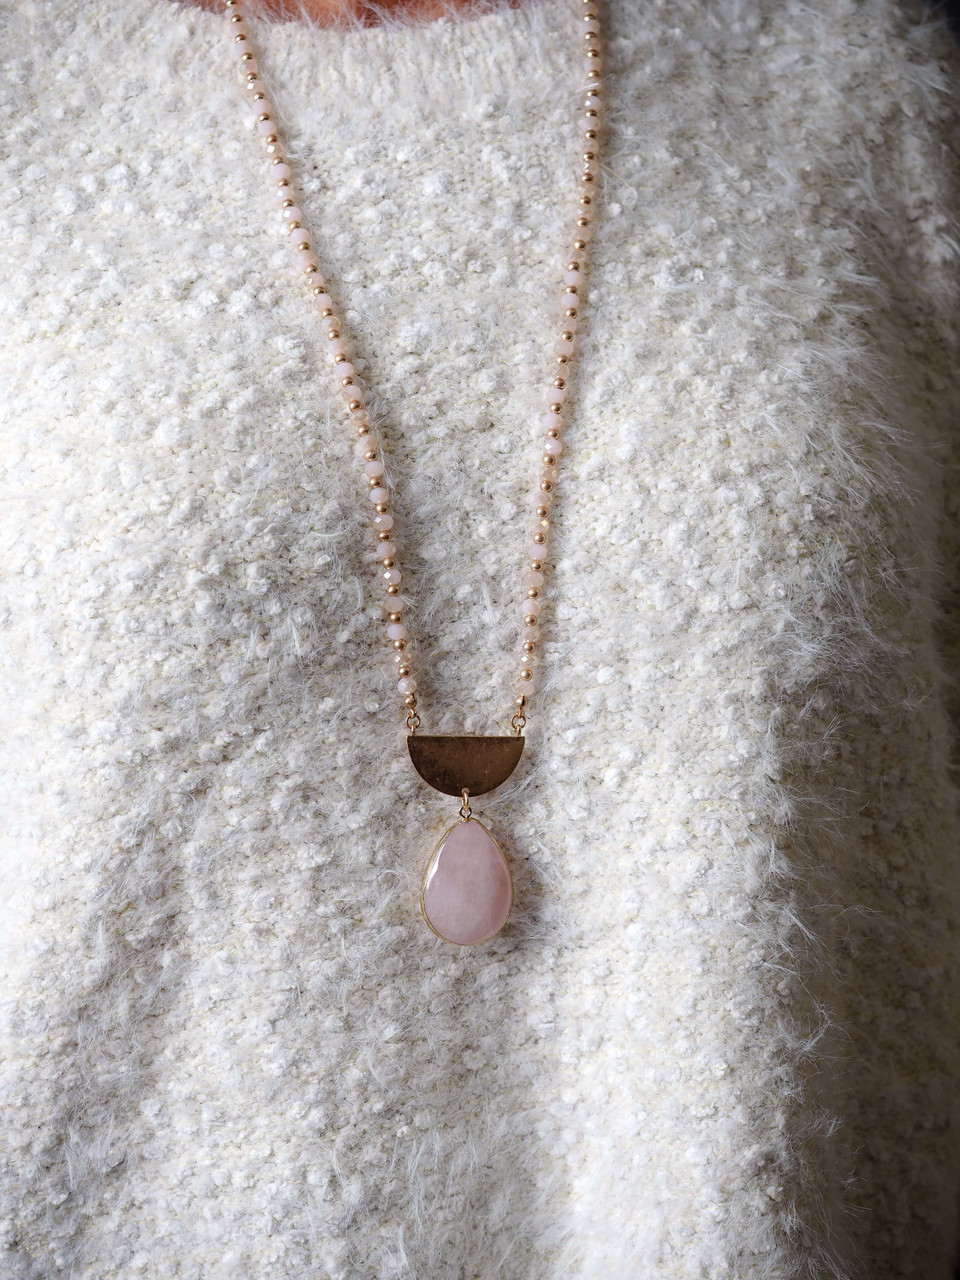 Blush and Gold Beaded Necklace, Gold Half Moon Detail with Blush Stone Pendant, Nickle and lead free.